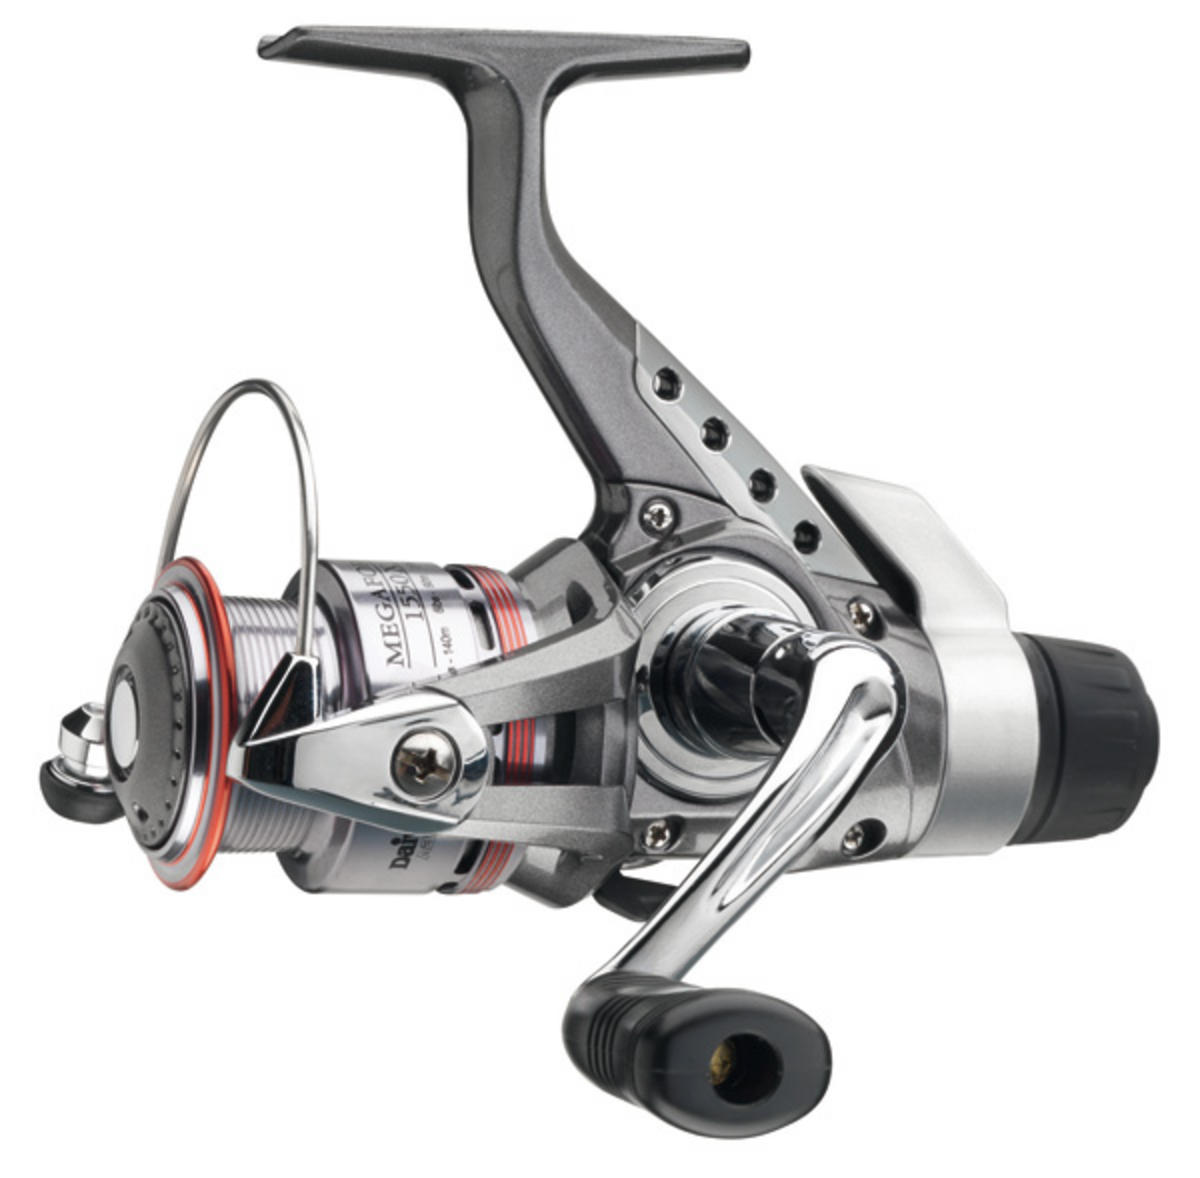 Daiwa megaforce 3050x fast drag fishing reel model no for Daiwa fishing reels